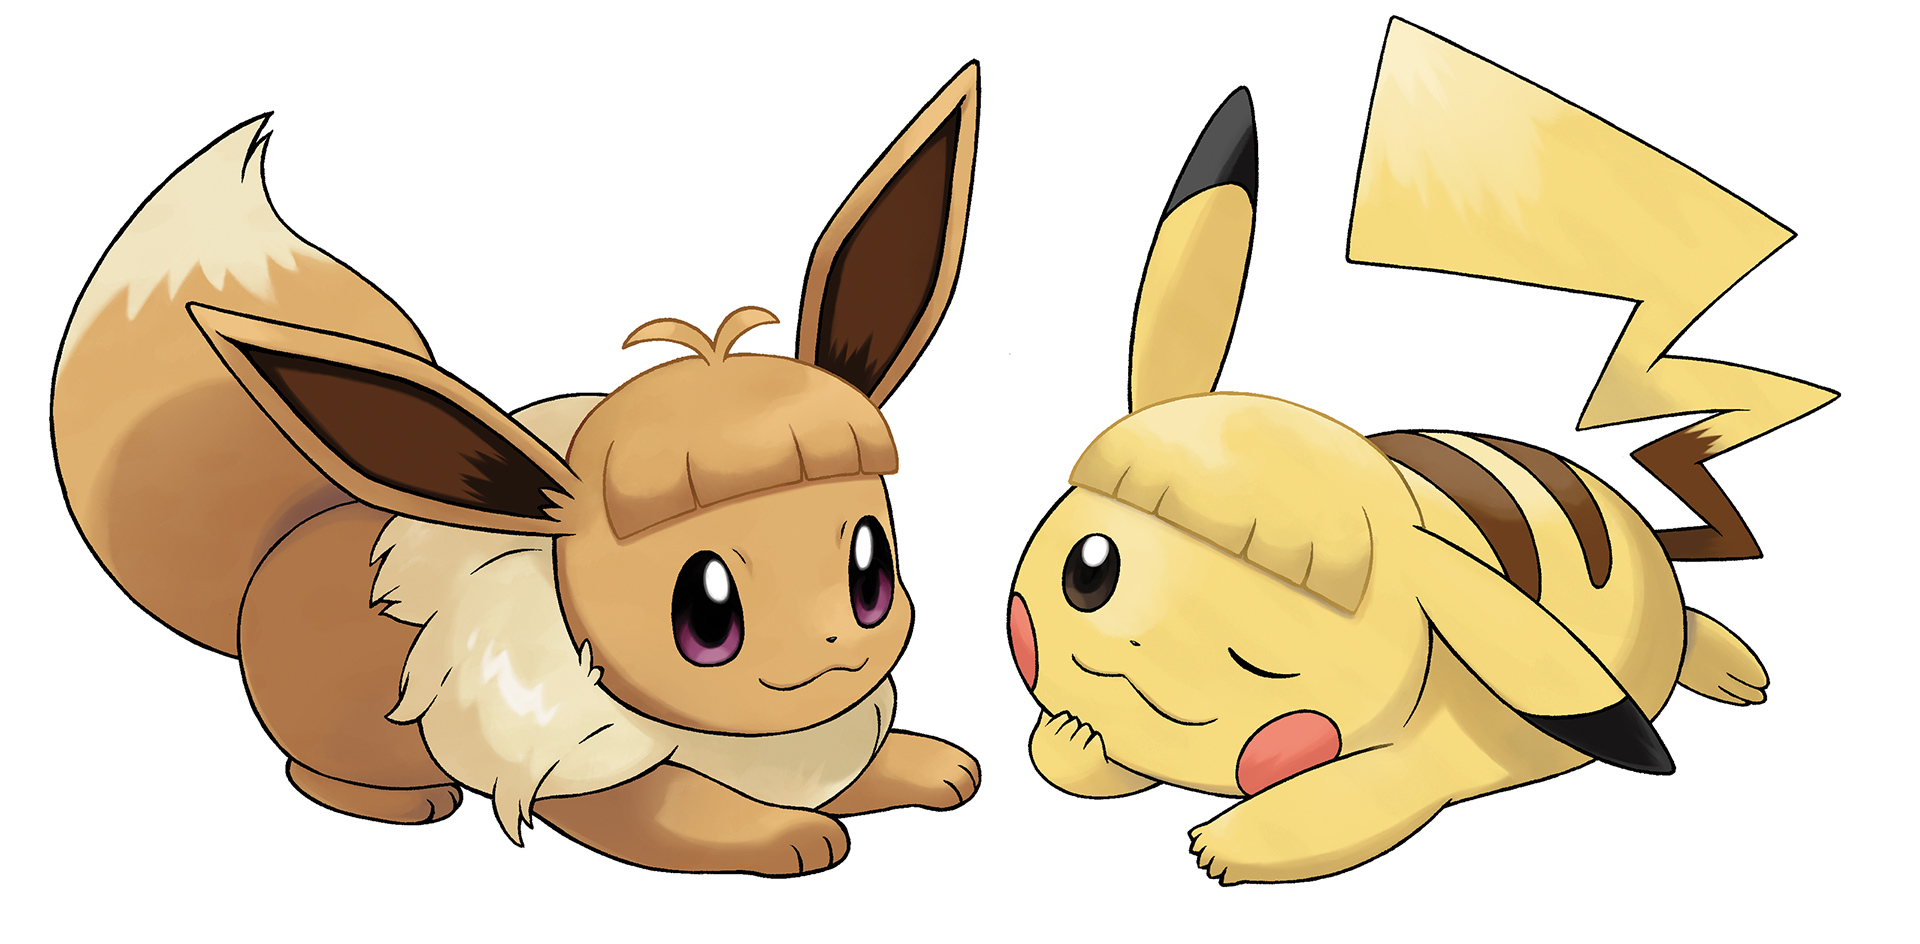 Pokemon: Let's Go, Pikachu has the better exclusives screenshot